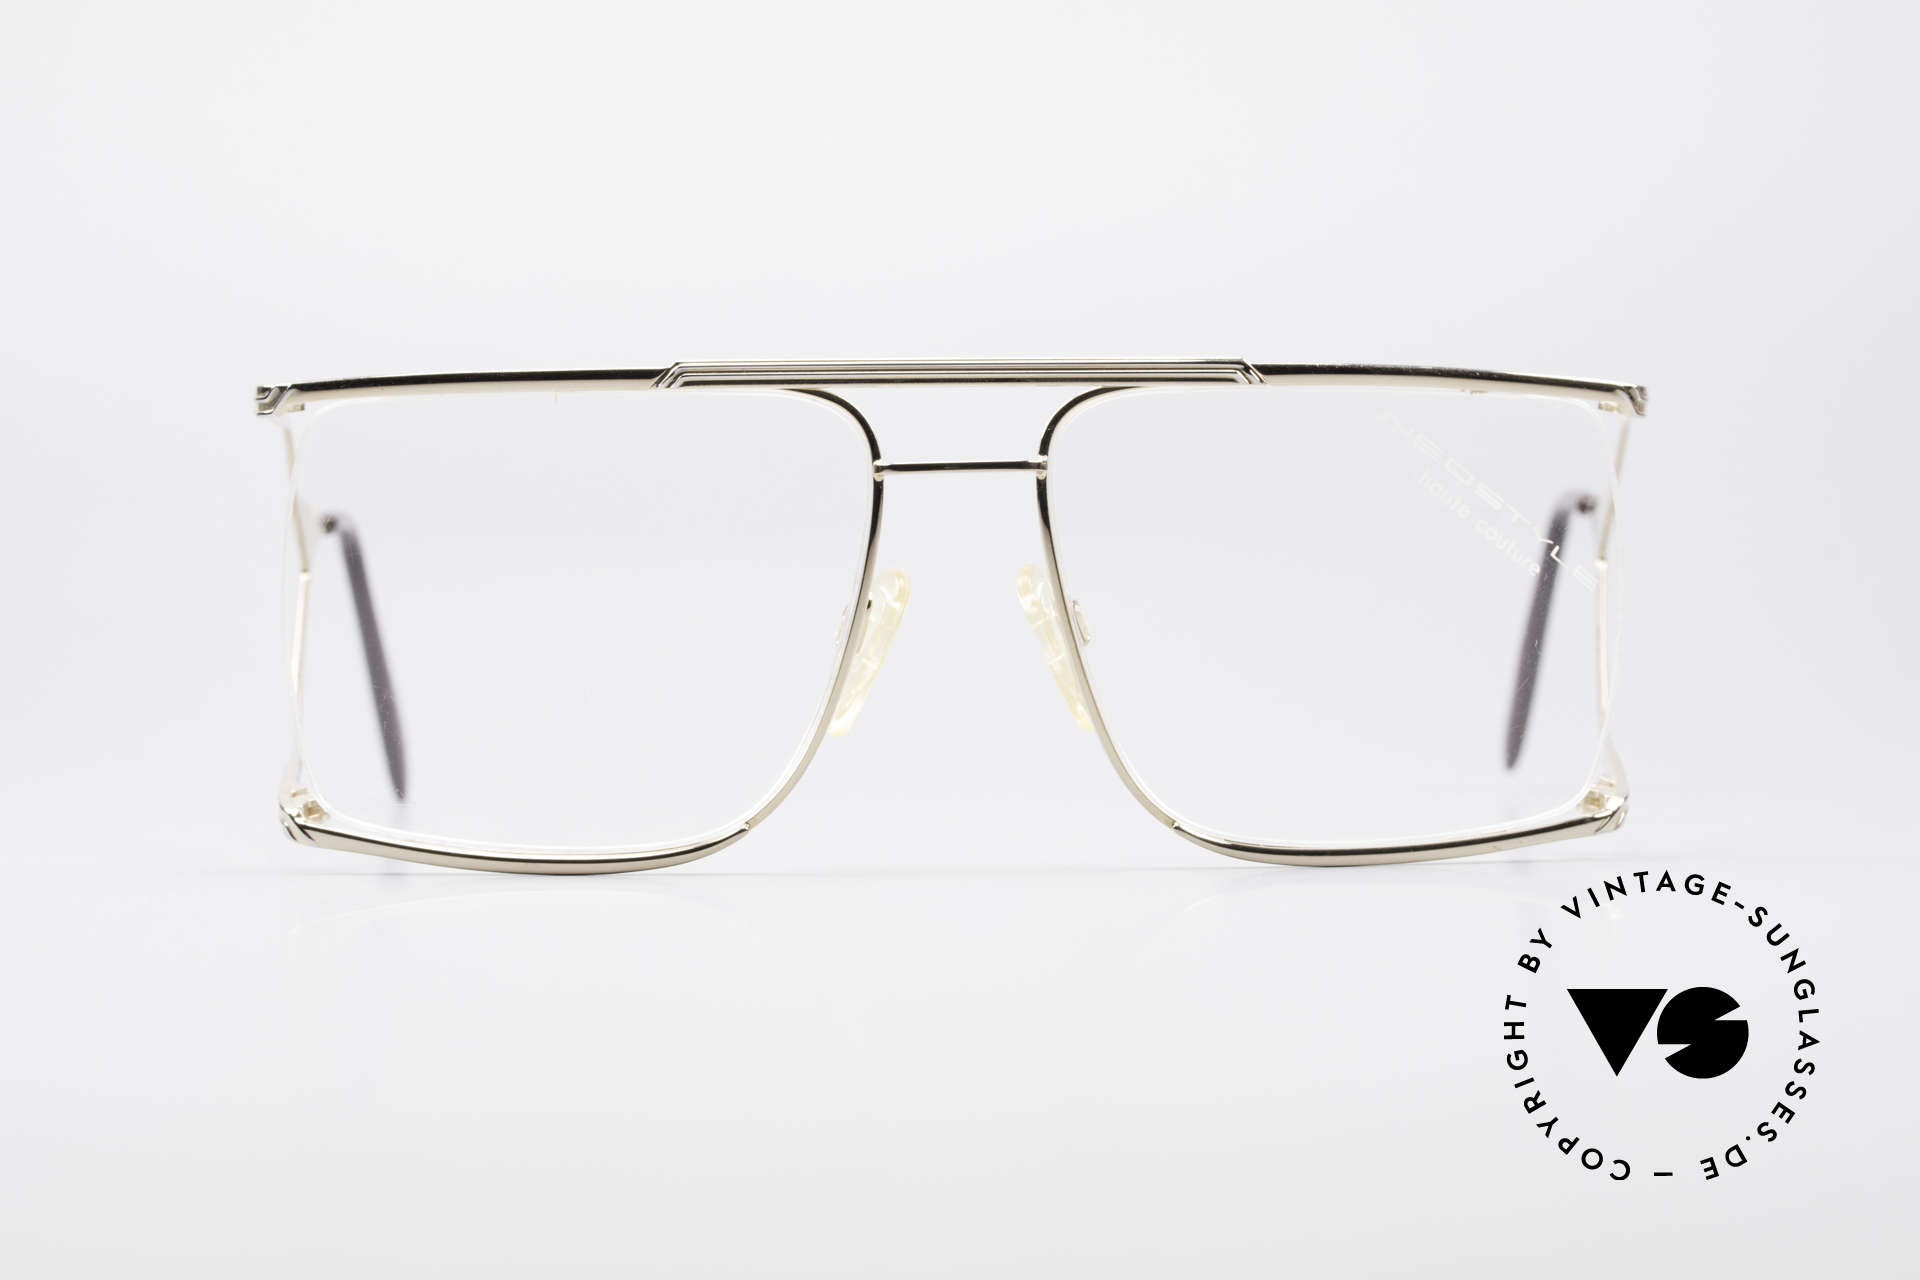 Neostyle Nautic 6 80's Miami Vice Eyeglasses, flashy design with double temples; true eye-catcher, Made for Men